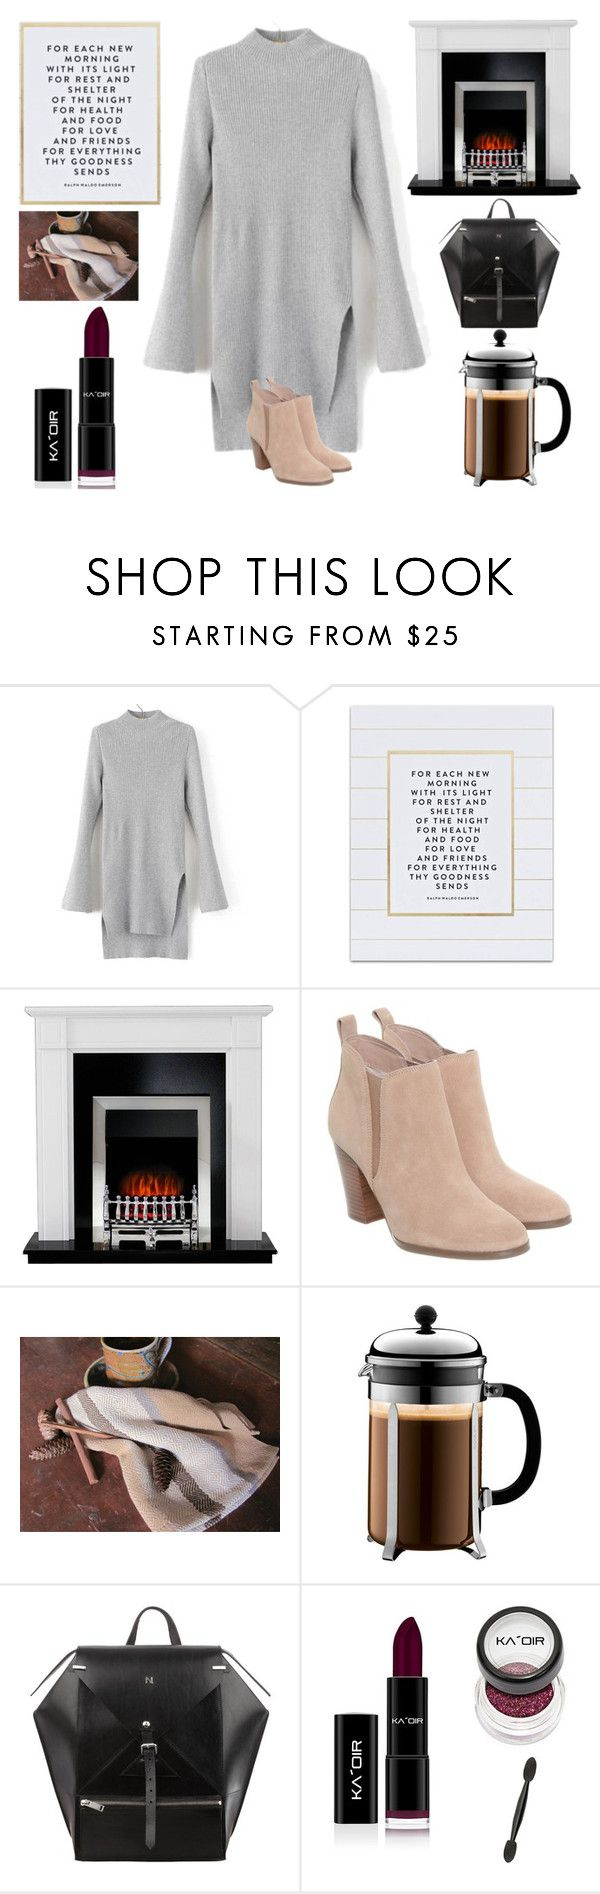 """""""Preparation"""" by dreamingdaisy ❤ liked on Polyvore featuring SS Print Shop, Michael Kors and Bodum"""